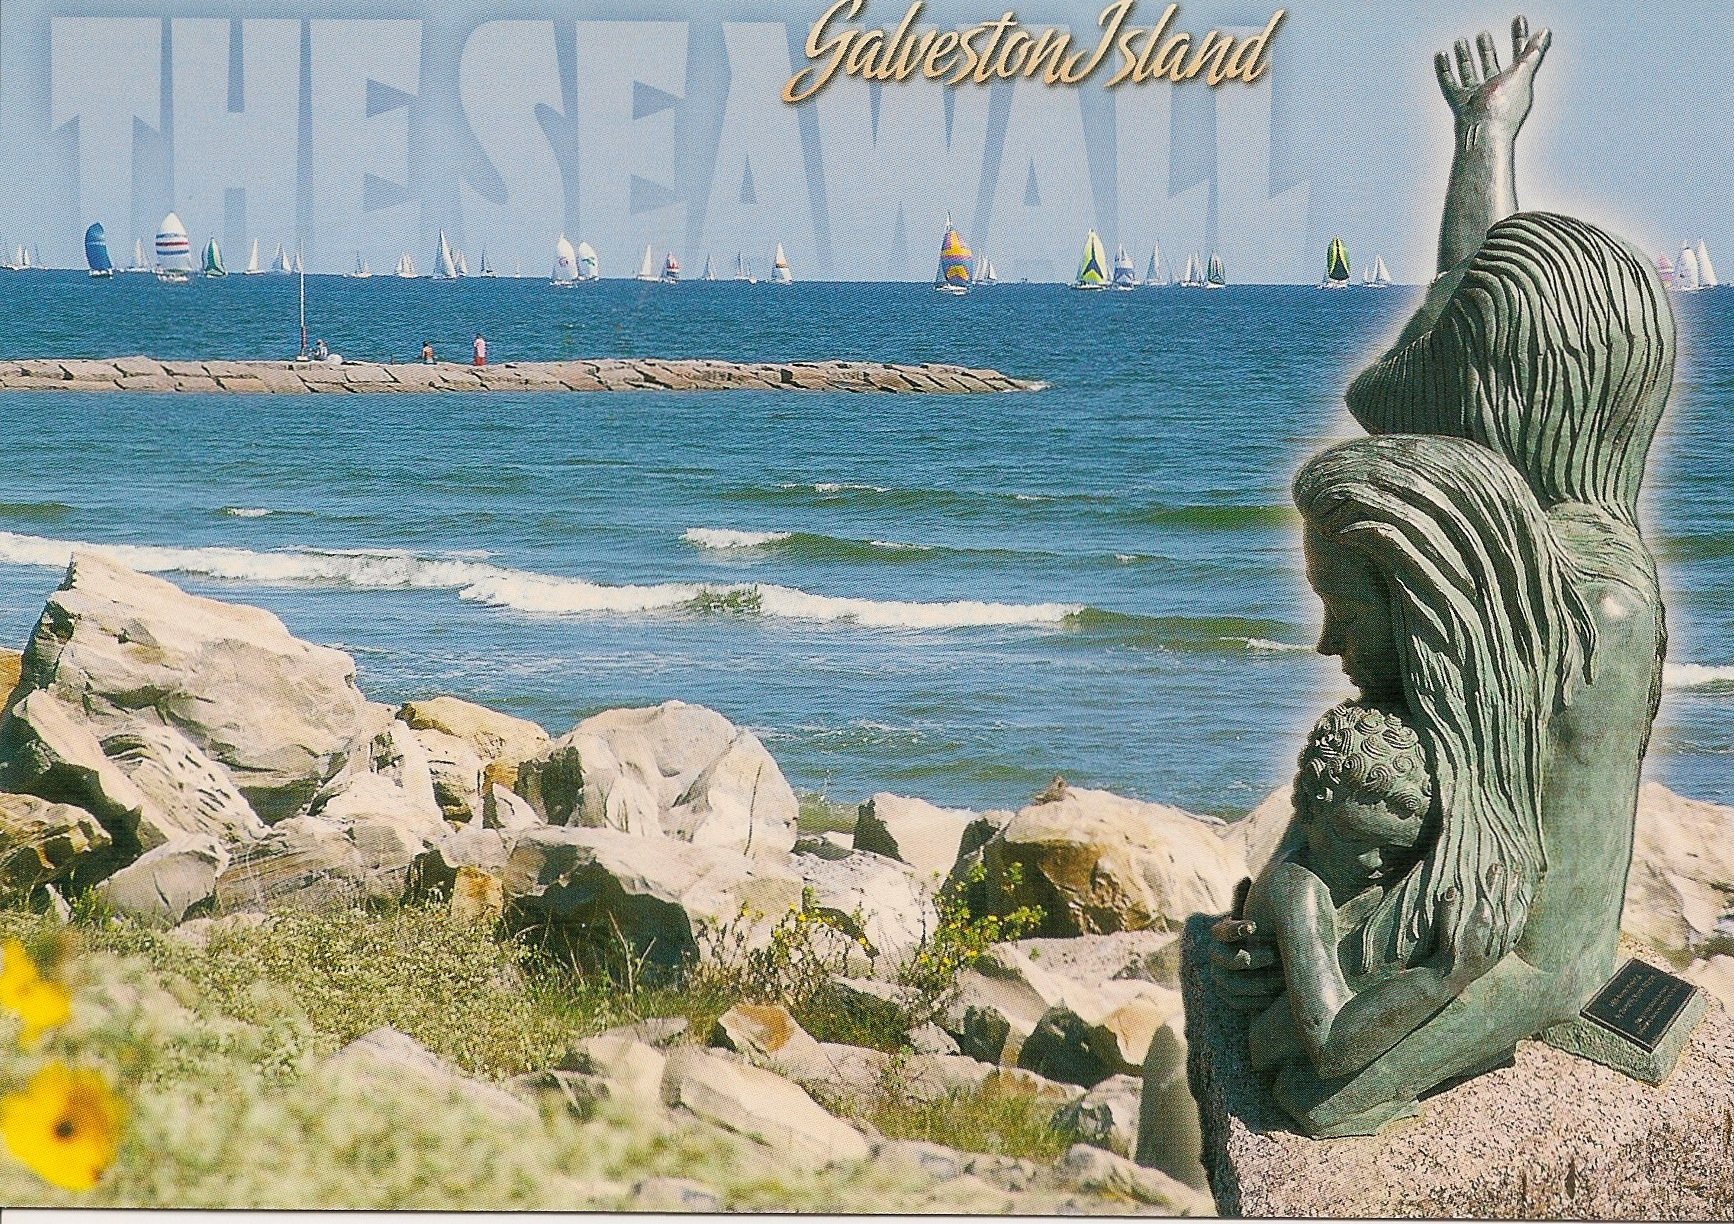 The Seawall, Galveston Island, Tx Postcard